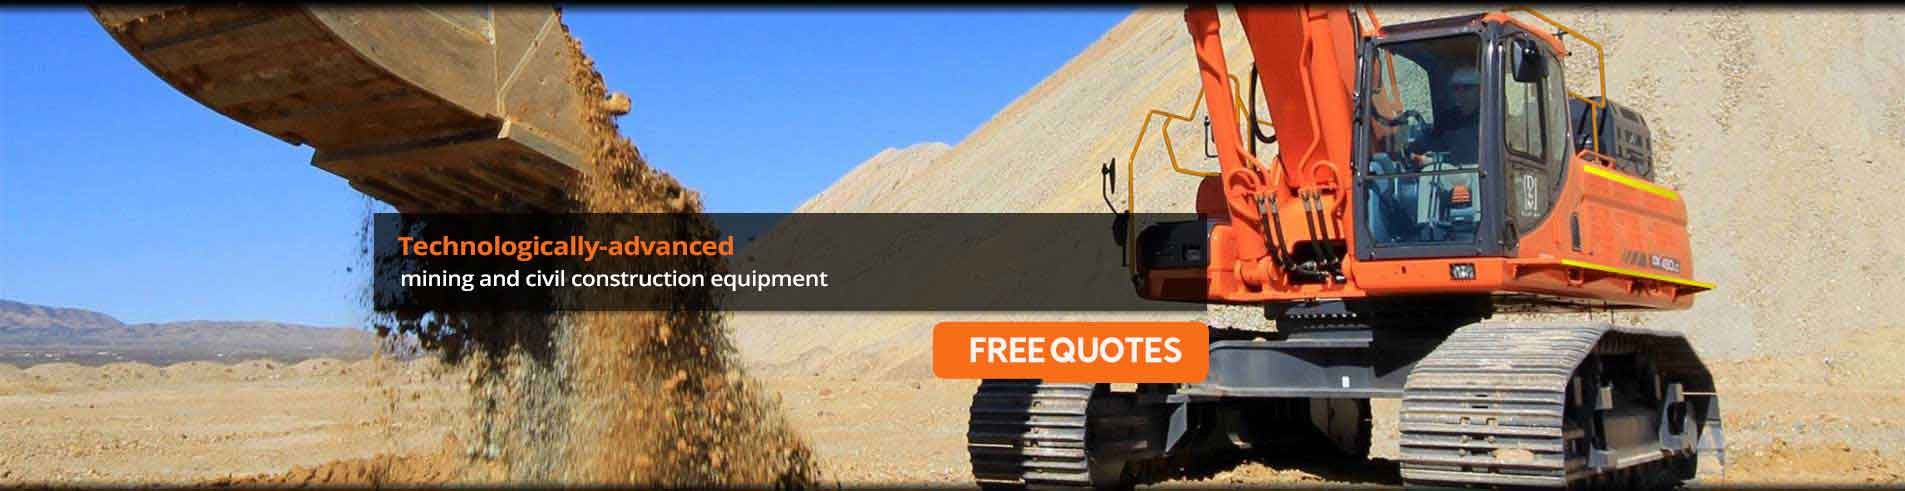 mining and civil construction equipment